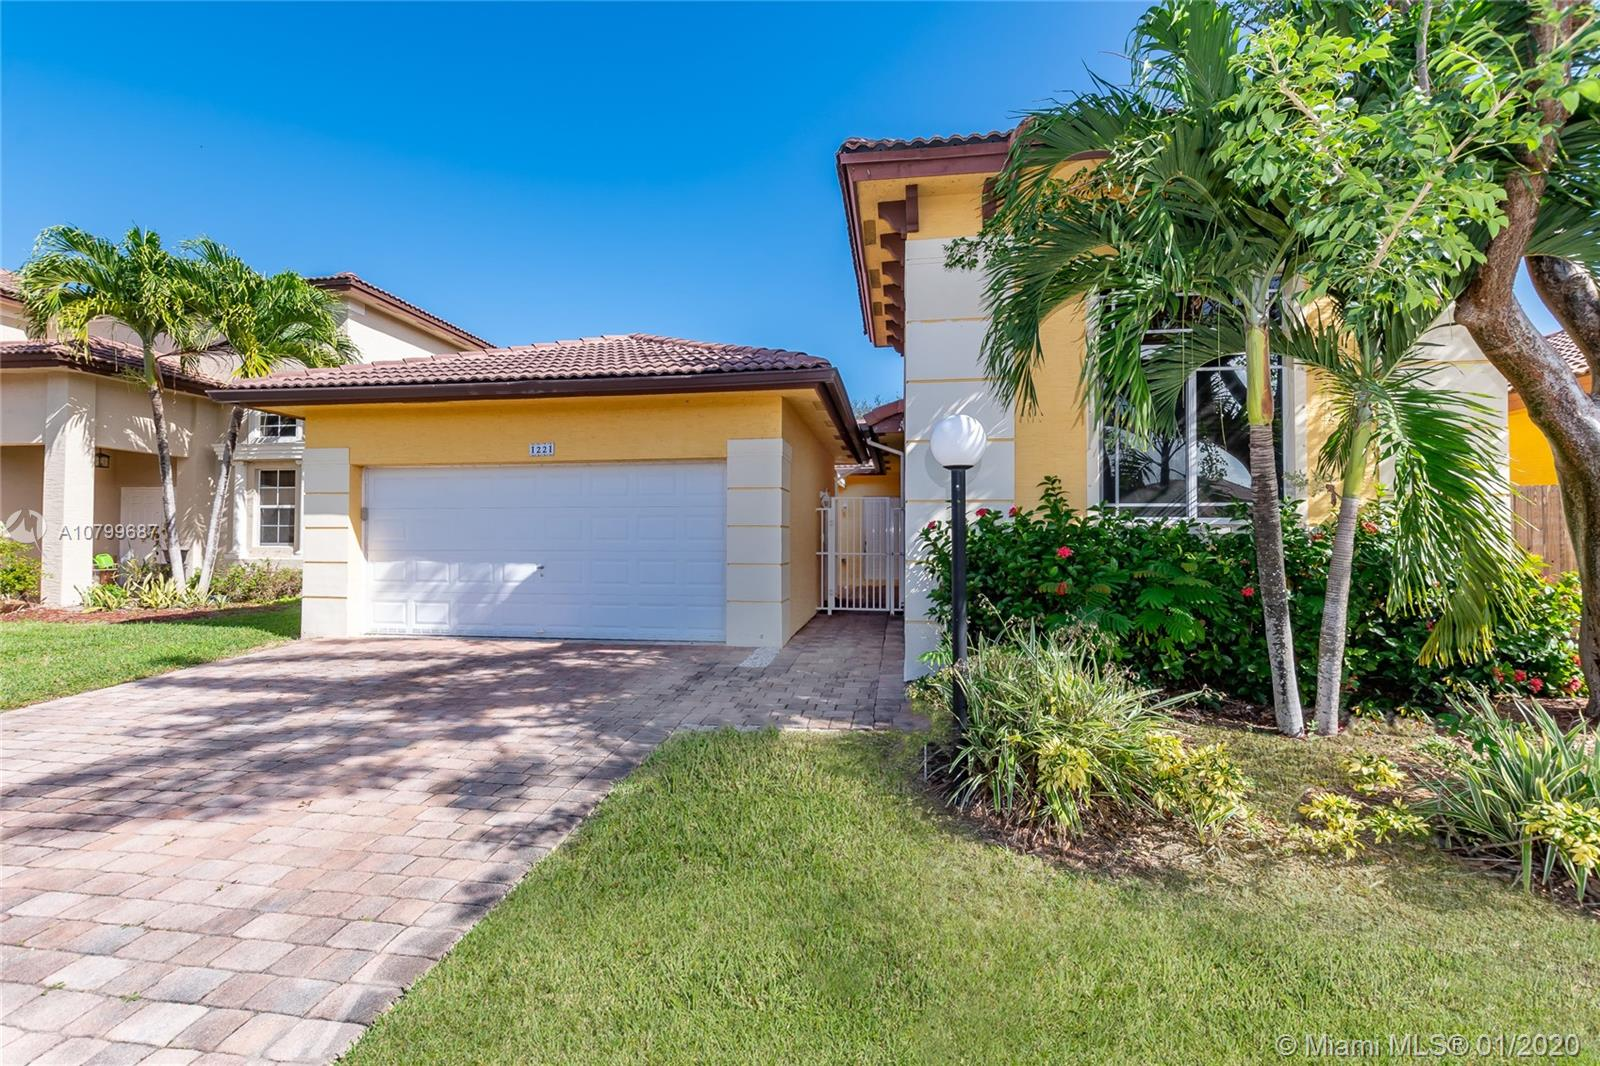 1221 NE 42 Ave, Homestead, FL 33033 - Homestead, FL real estate listing